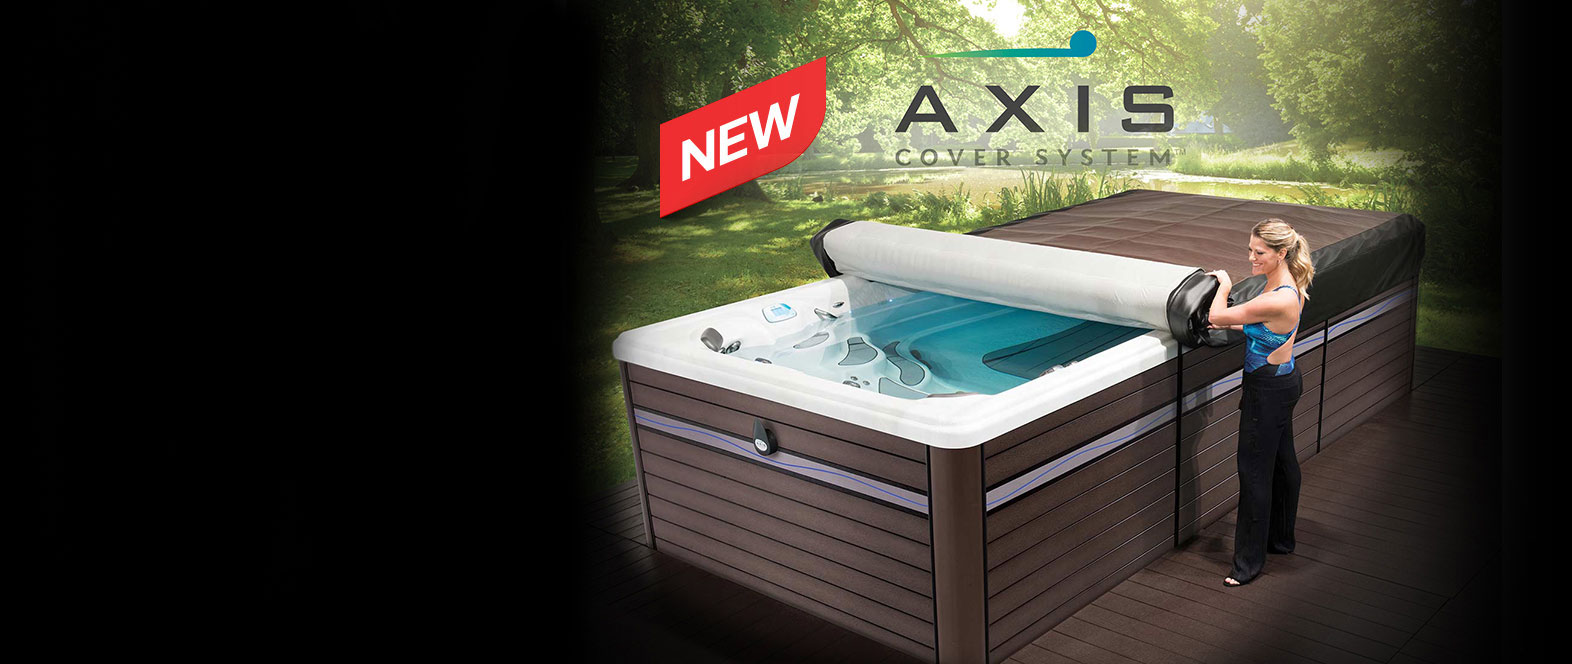 Axis Cover System by Master Spas